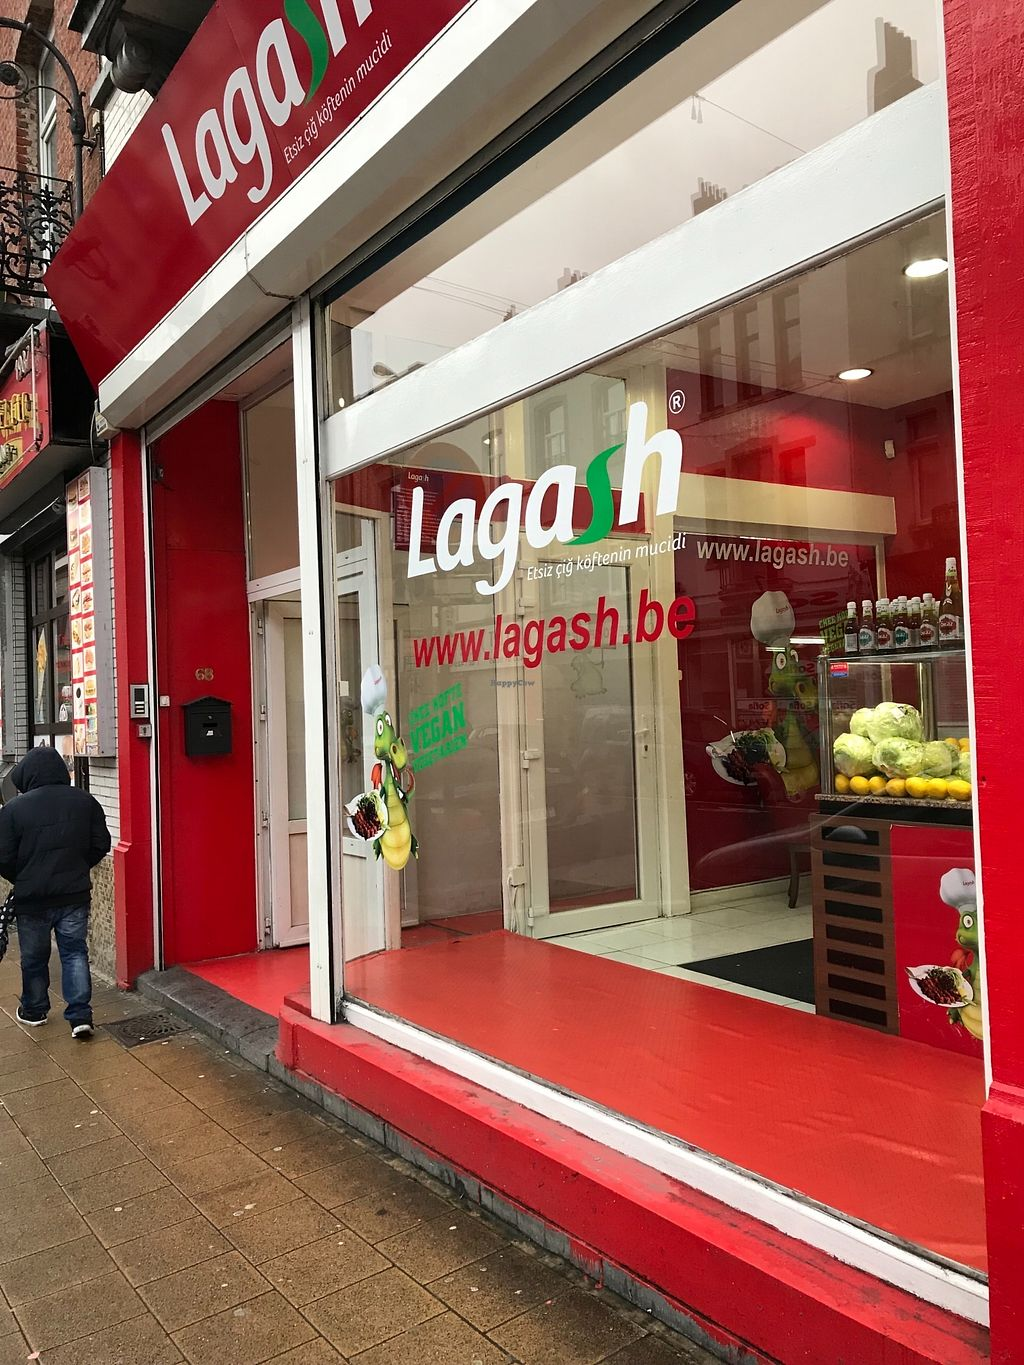 """Photo of Lagash - Laeken  by <a href=""""/members/profile/madisonehaley"""">madisonehaley</a> <br/>front of restaurant  <br/> March 28, 2018  - <a href='/contact/abuse/image/113115/377395'>Report</a>"""